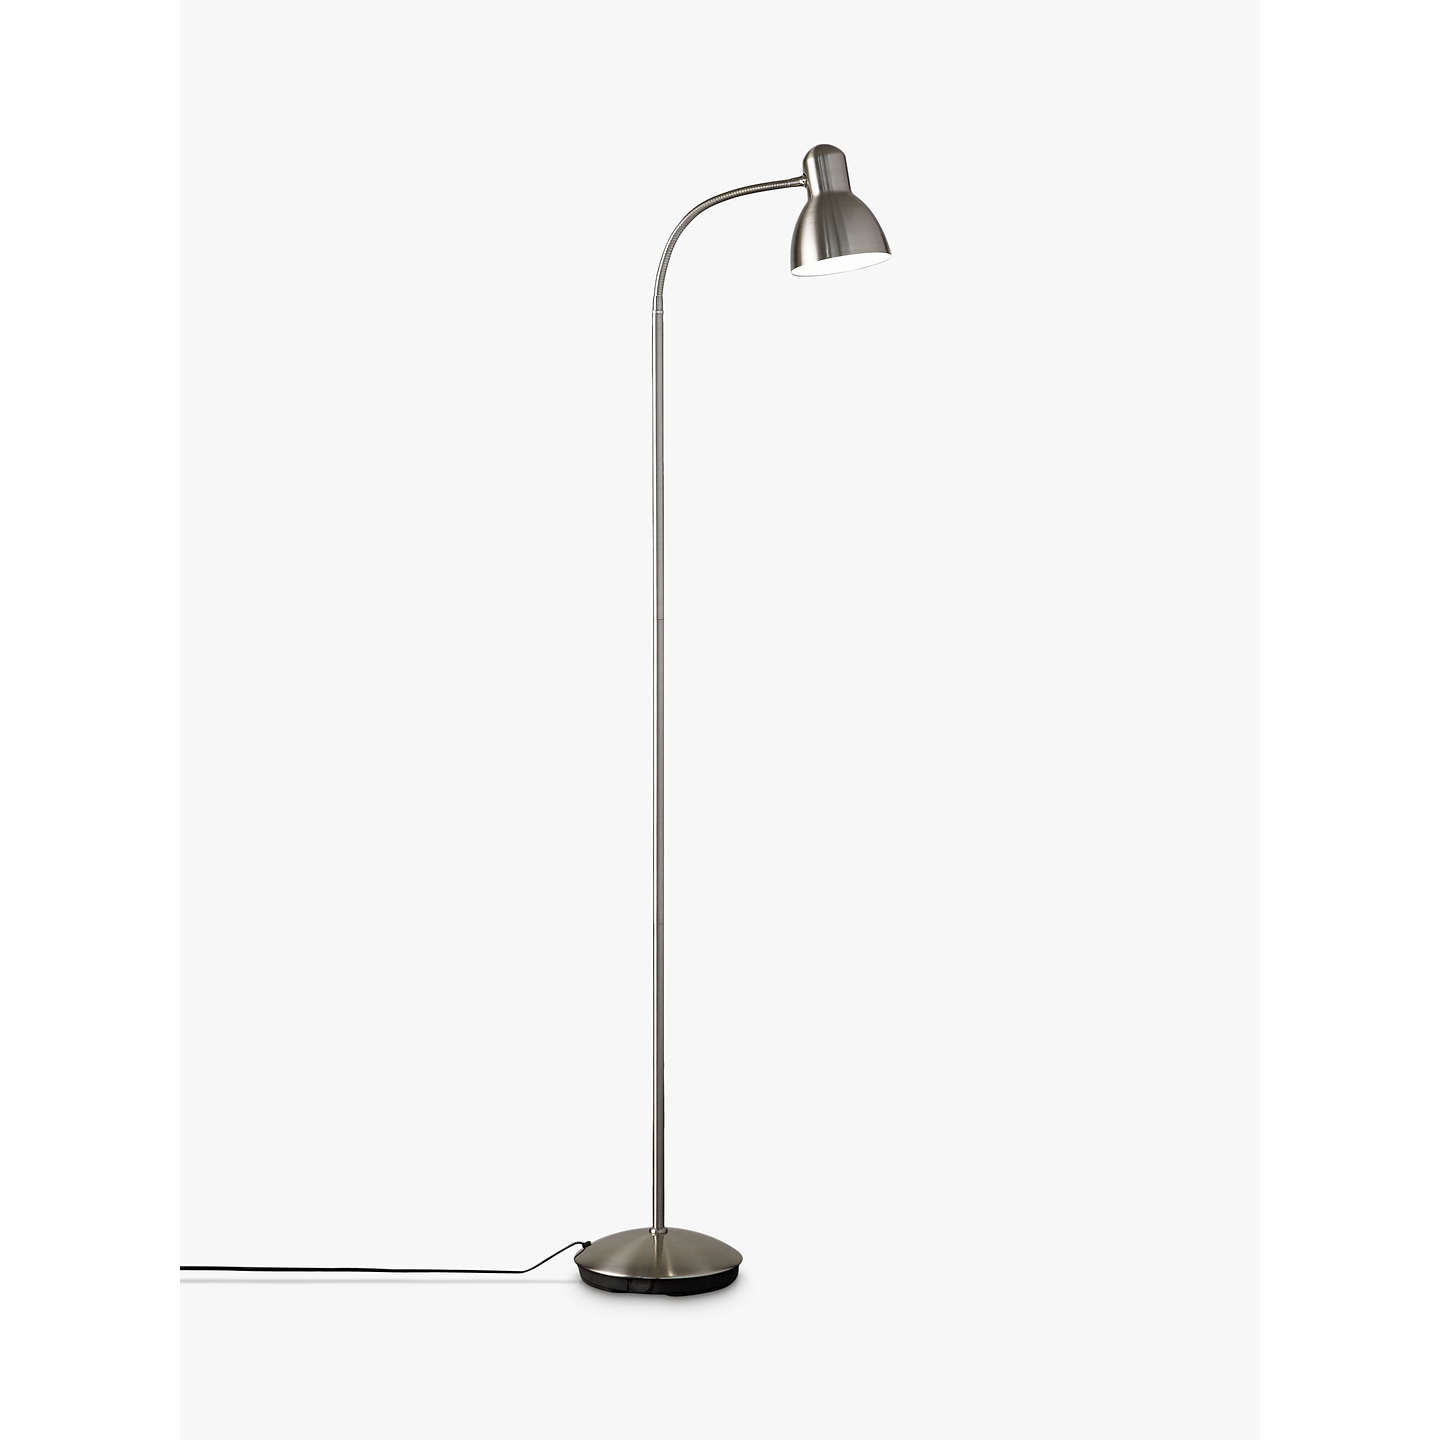 John lewis mykki led floor lamp at john lewis for John lewis floor lamp reading